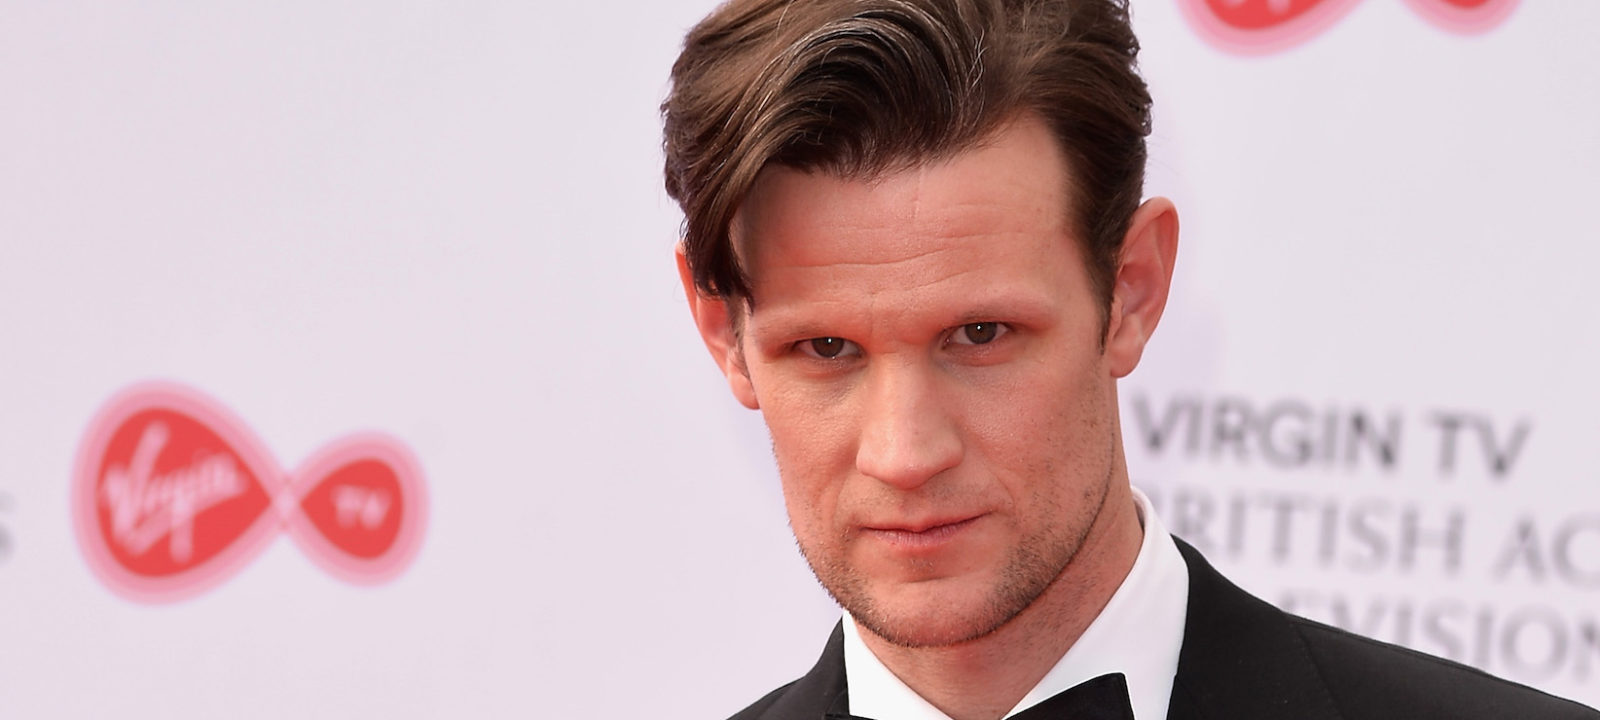 Matt Smith attends the Virgin TV BAFTA Television Awards at The Royal Festival Hall on May 14, 2017 in London, England.